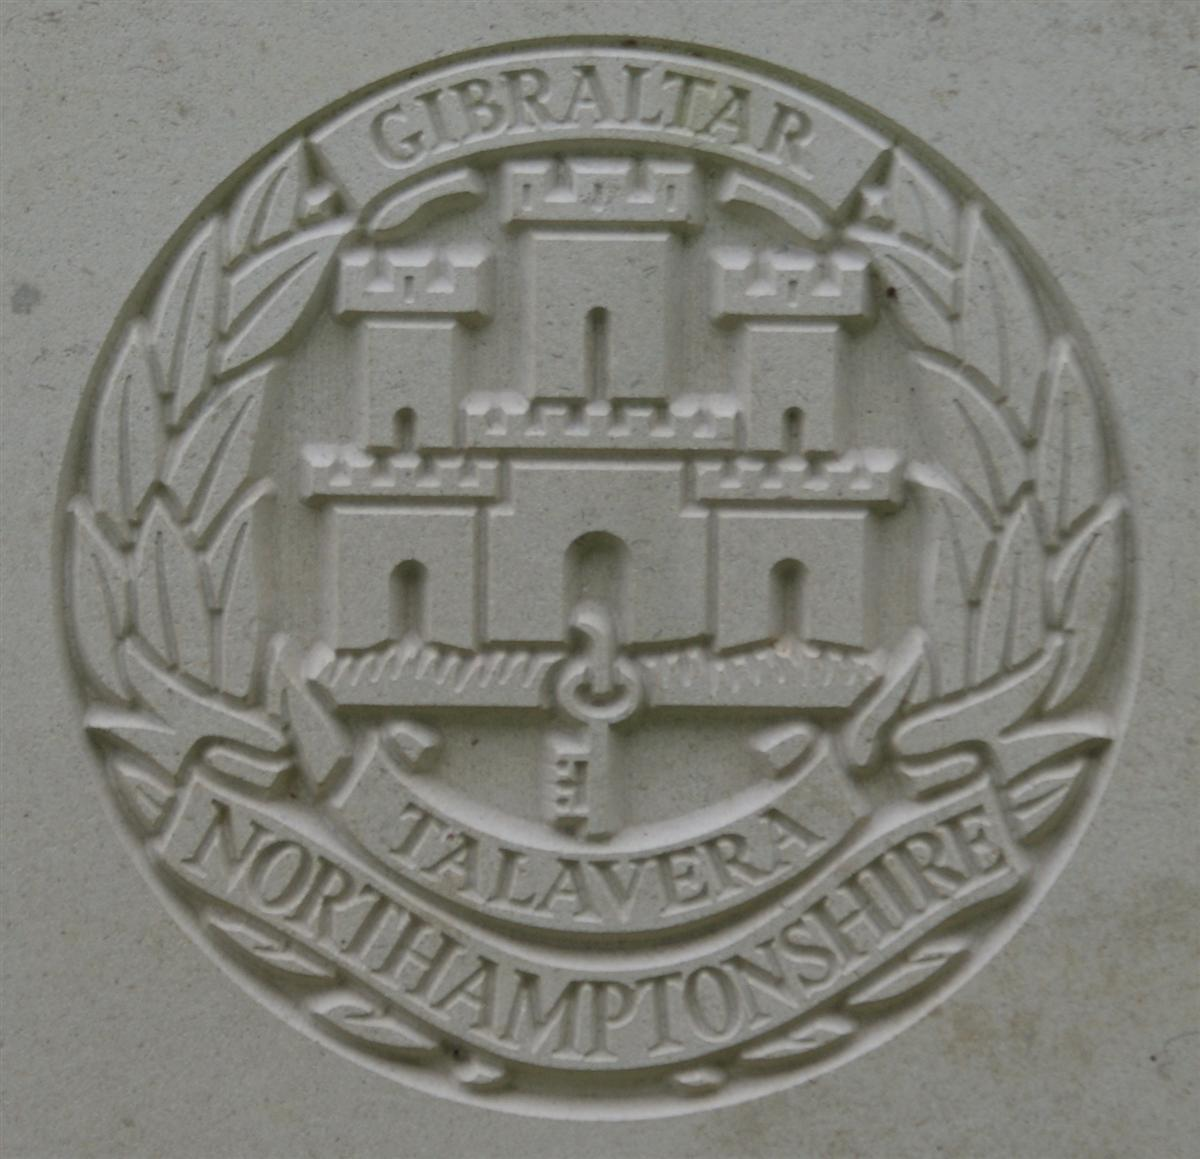 Northamptonshire Regiment badge